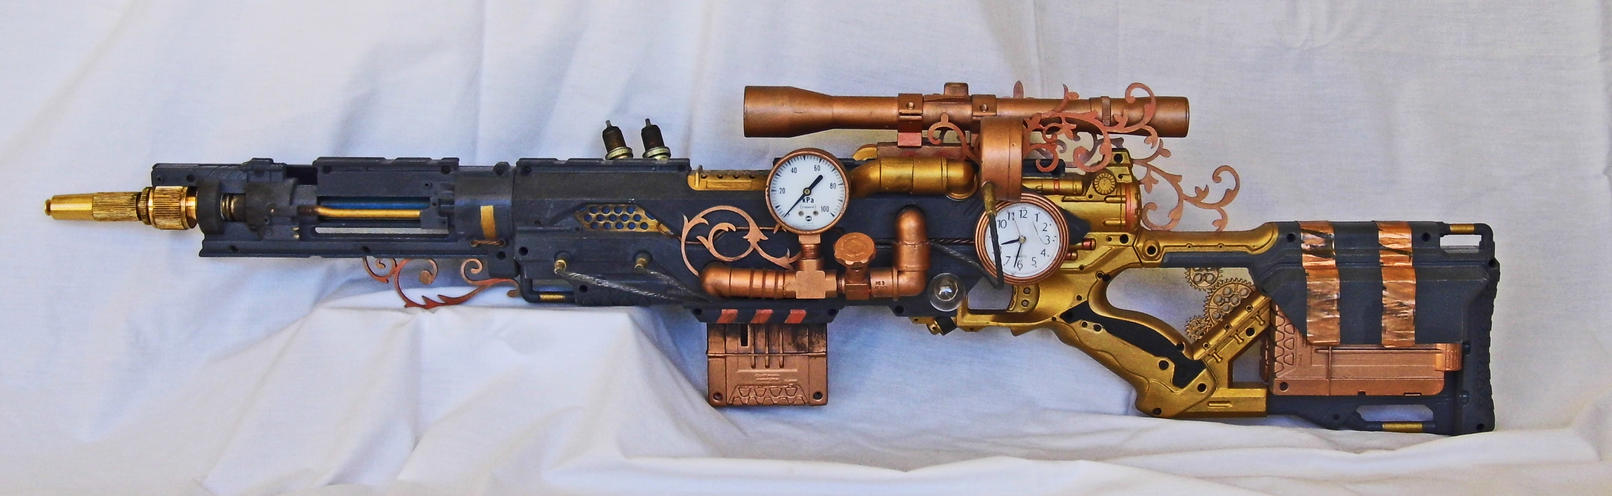 Steampunk Sniper Rifle by vanbangerburger